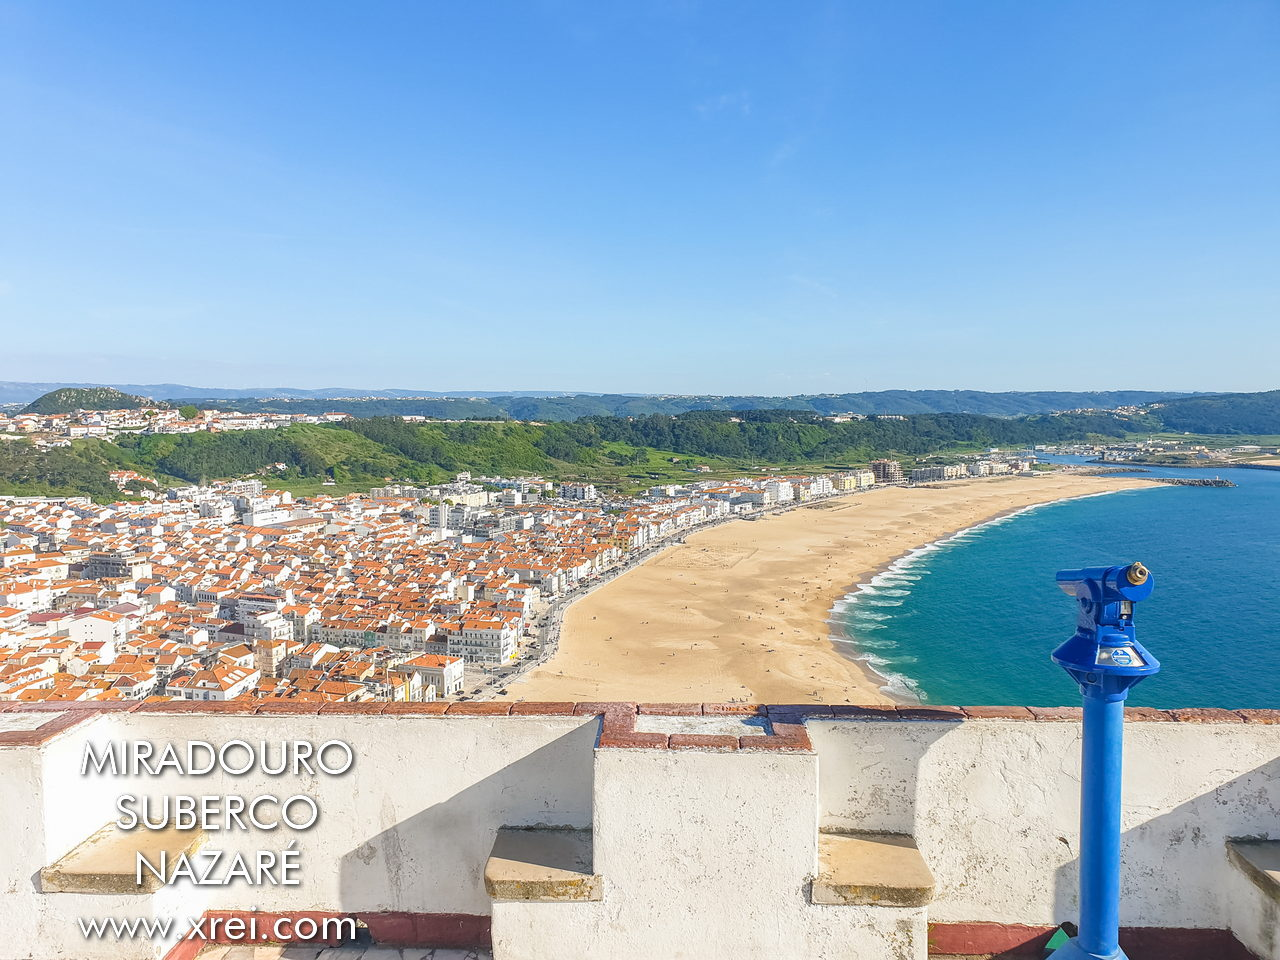 Suberco viewpoint with a view of Nazaré beach and the port of Nazaré in the background